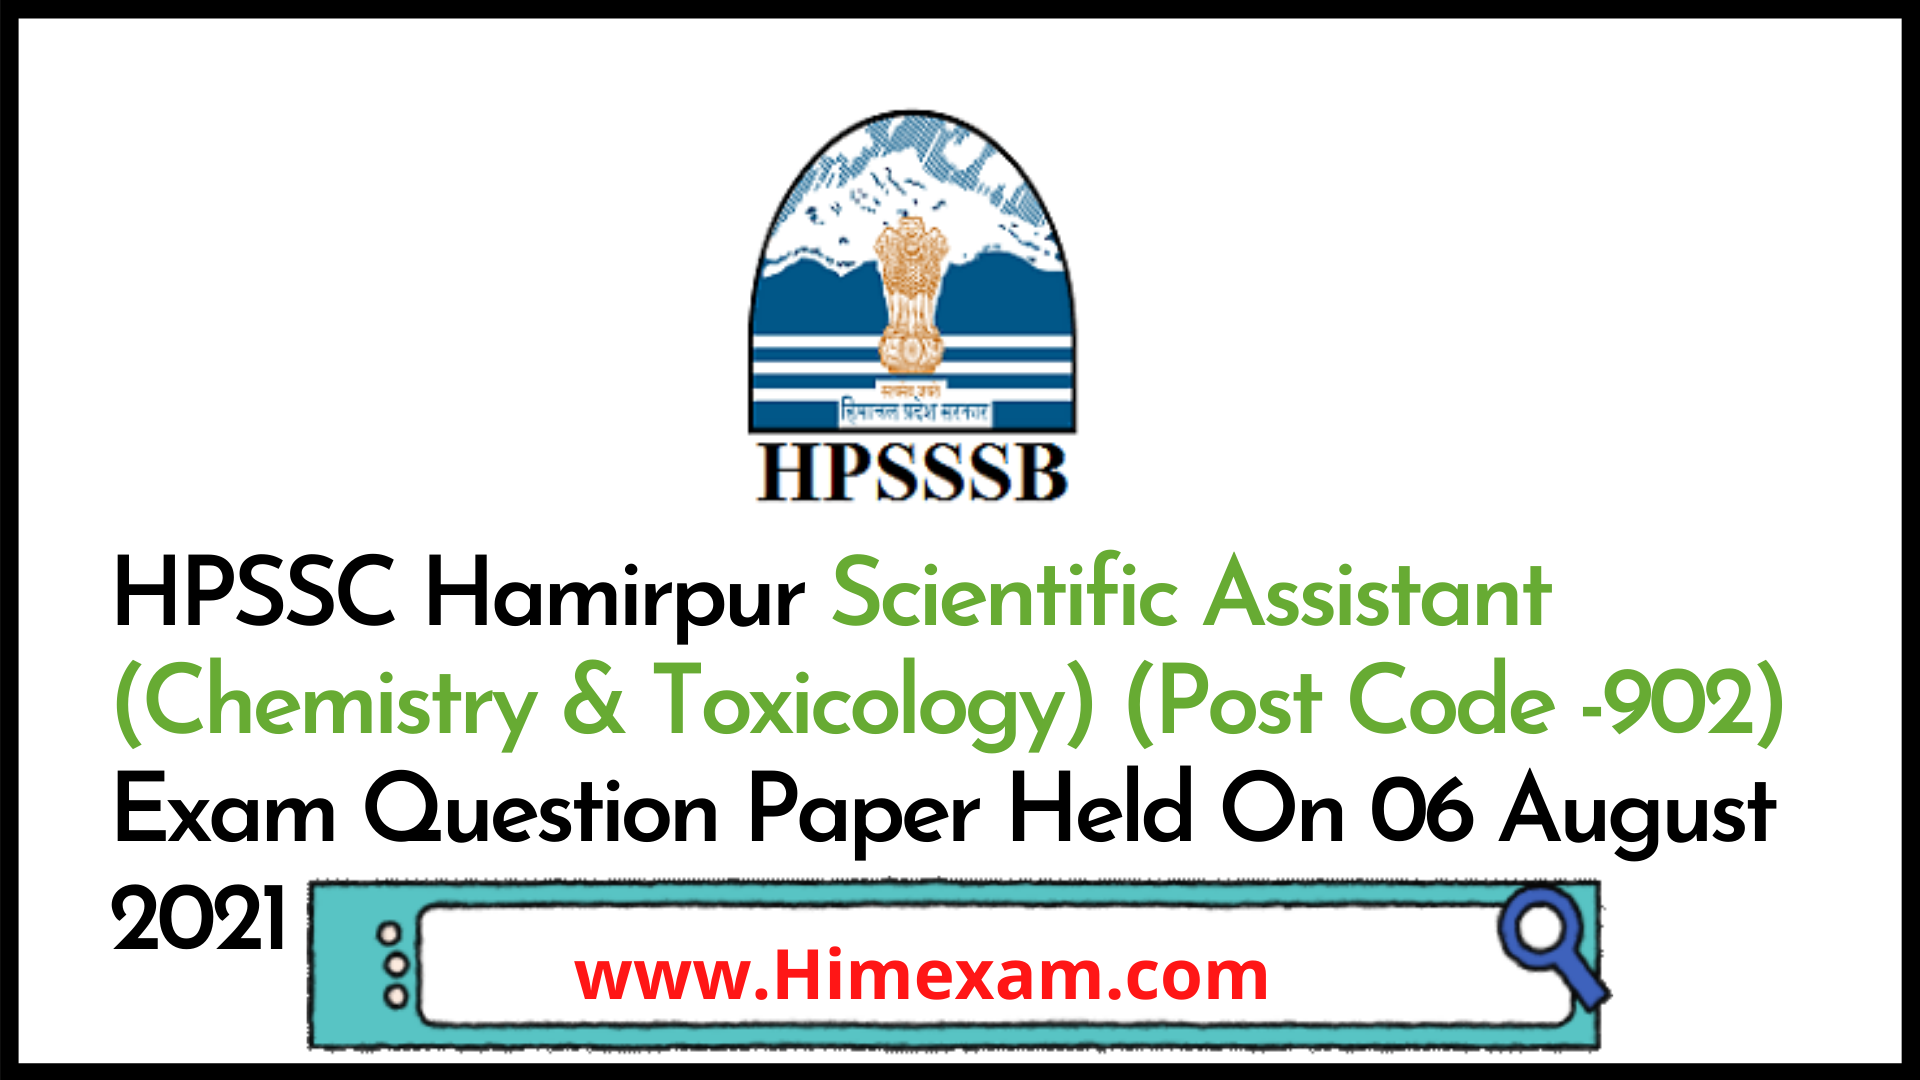 HPSSC Hamirpur Scientific Assistant (Chemistry & Toxicology) (Post Code -902) Exam Question Paper Held On 06 August 2021